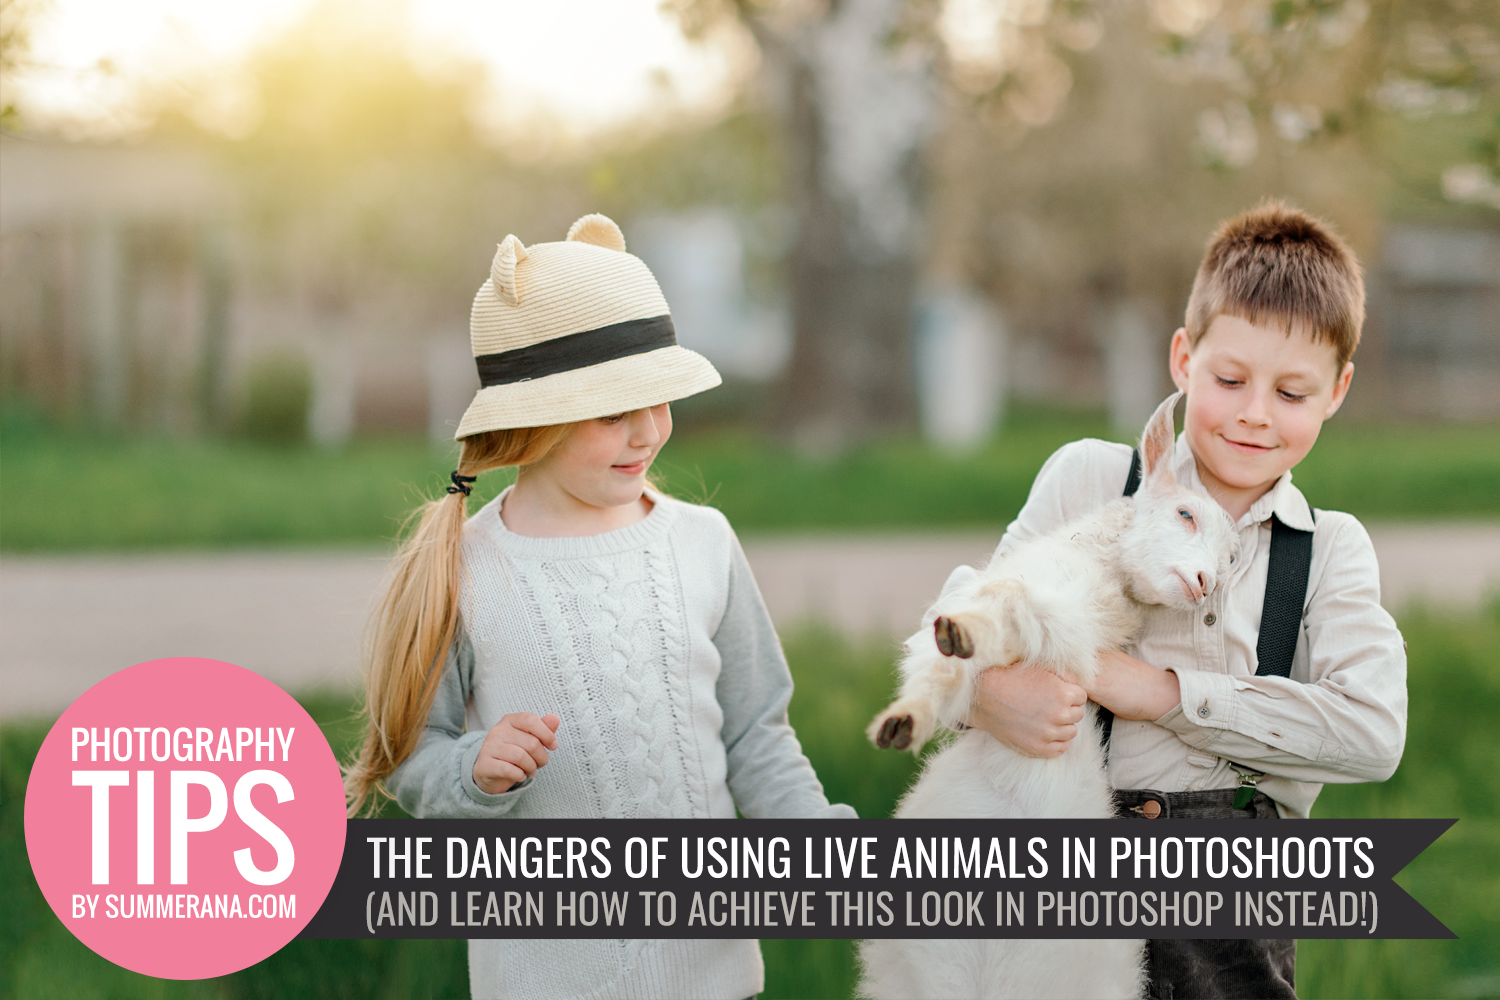 The-dangers-of-photographing-live-animals-and-Learn-How-to-Achieve-this-Look-in-Photoshop-Instead